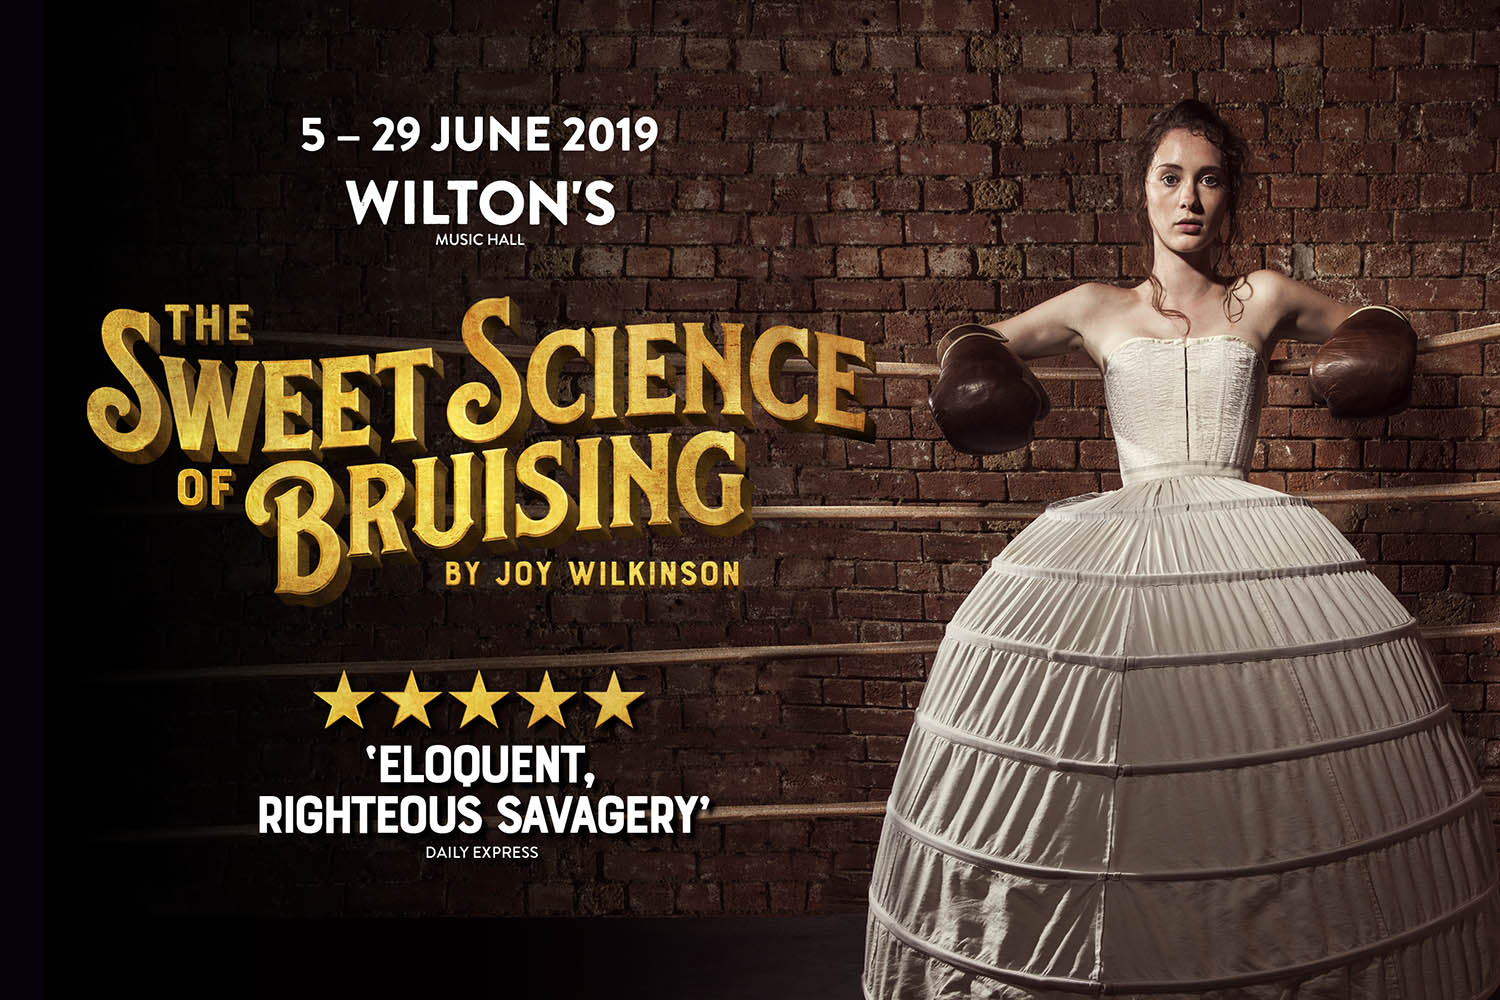 Promo image for The Sweet Science of Bruising play at Wilton's Music Hall